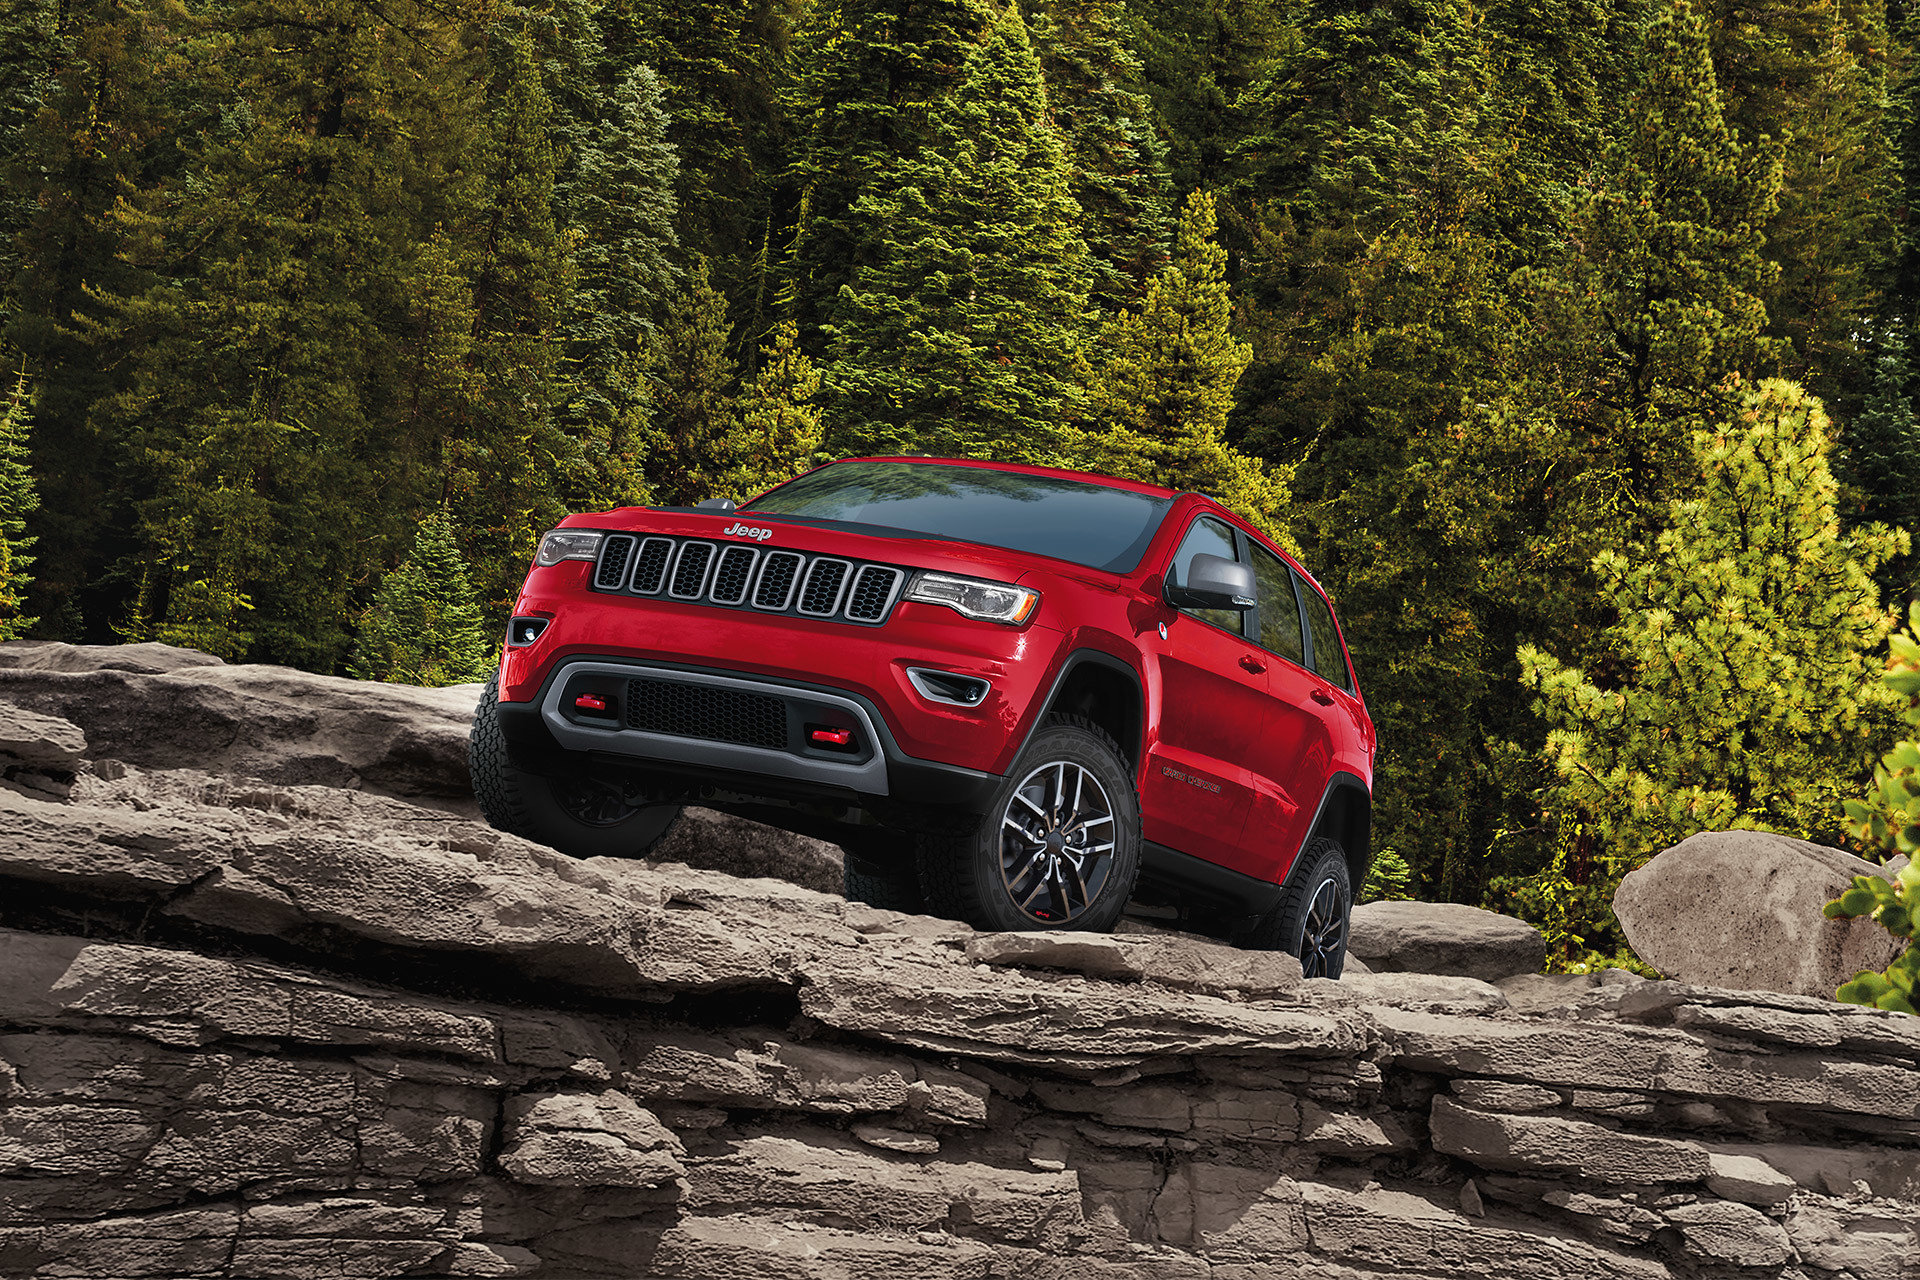 2020 jeep grand cherokee exterior gallery red parked top cliff wood 7ee968a4401a99882c2ea8366997a497